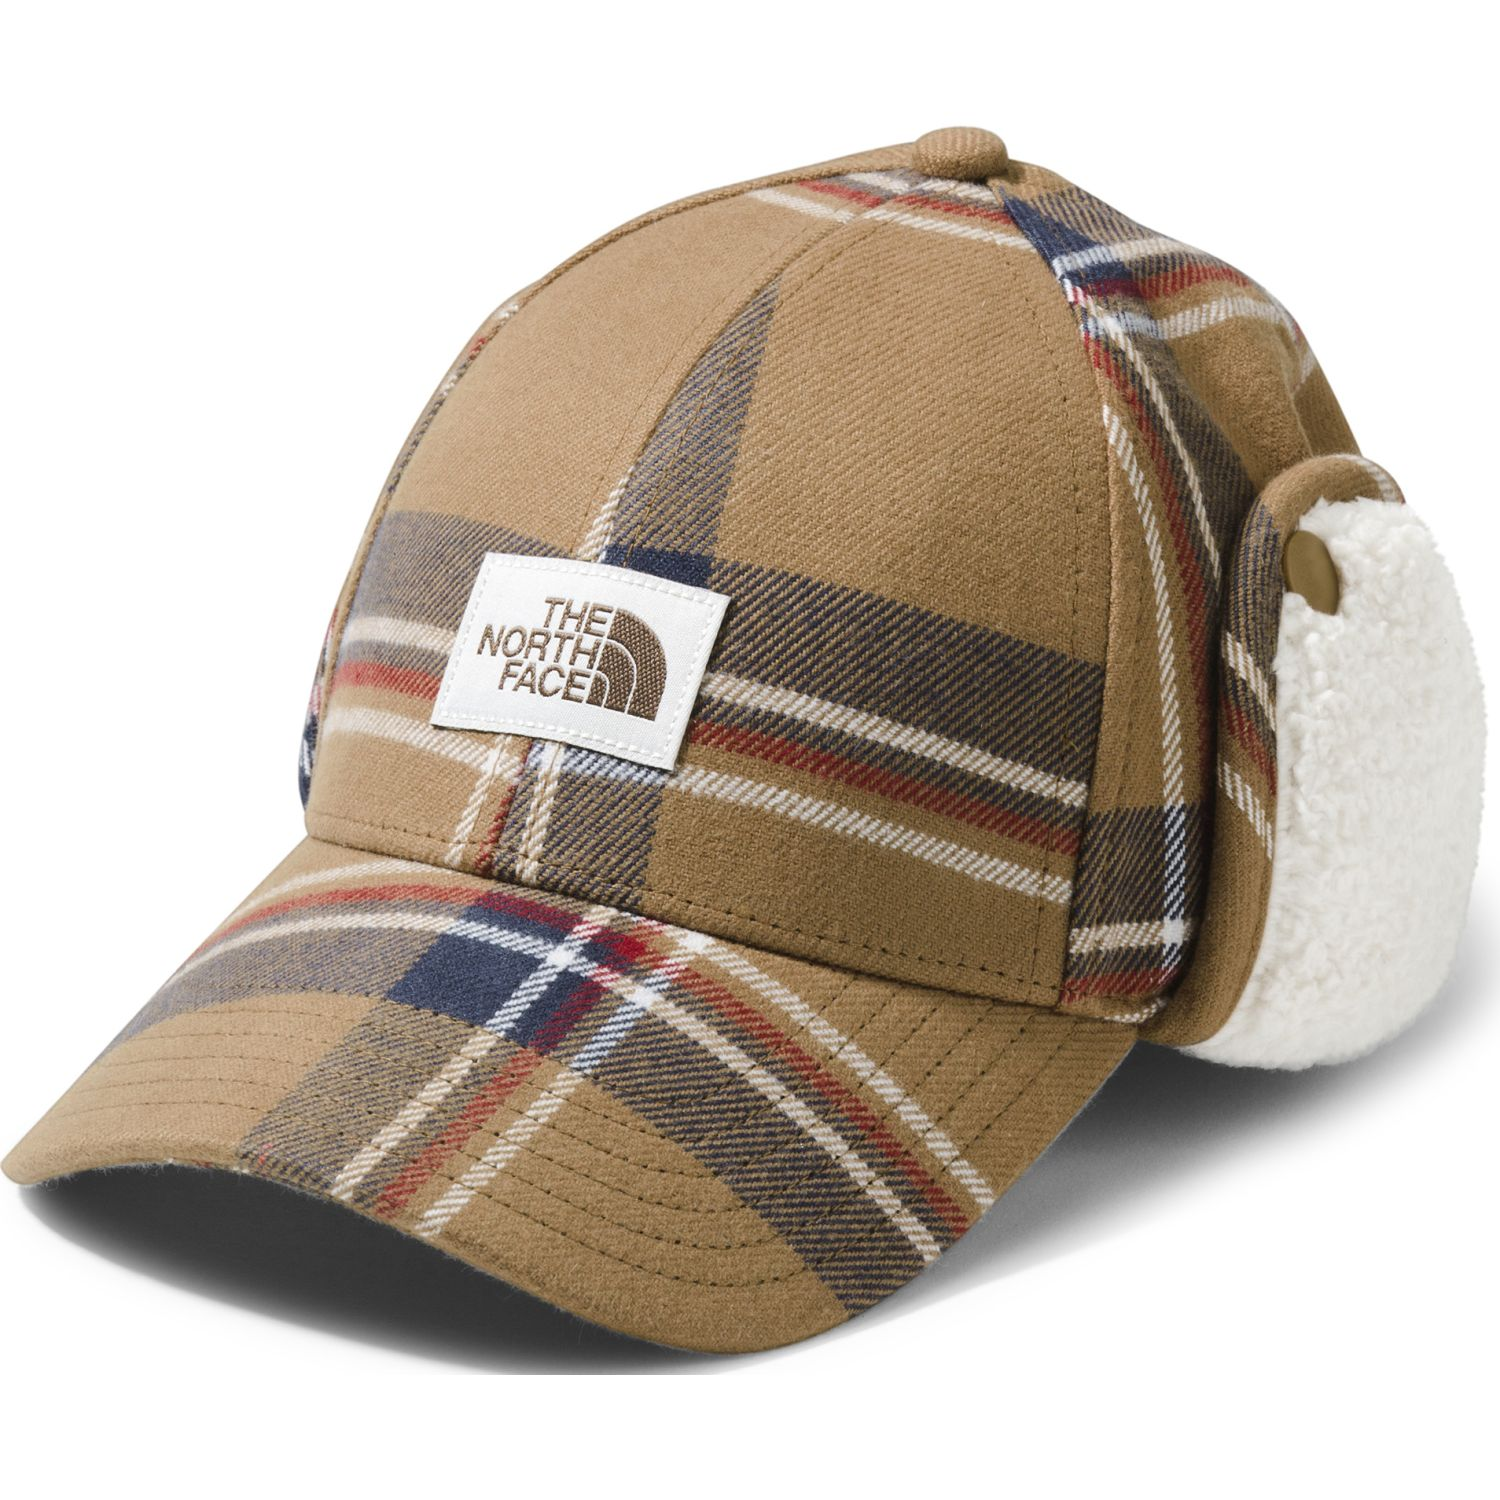 The North Face Campshire Earflap Hat Marron Gorros de Baseball